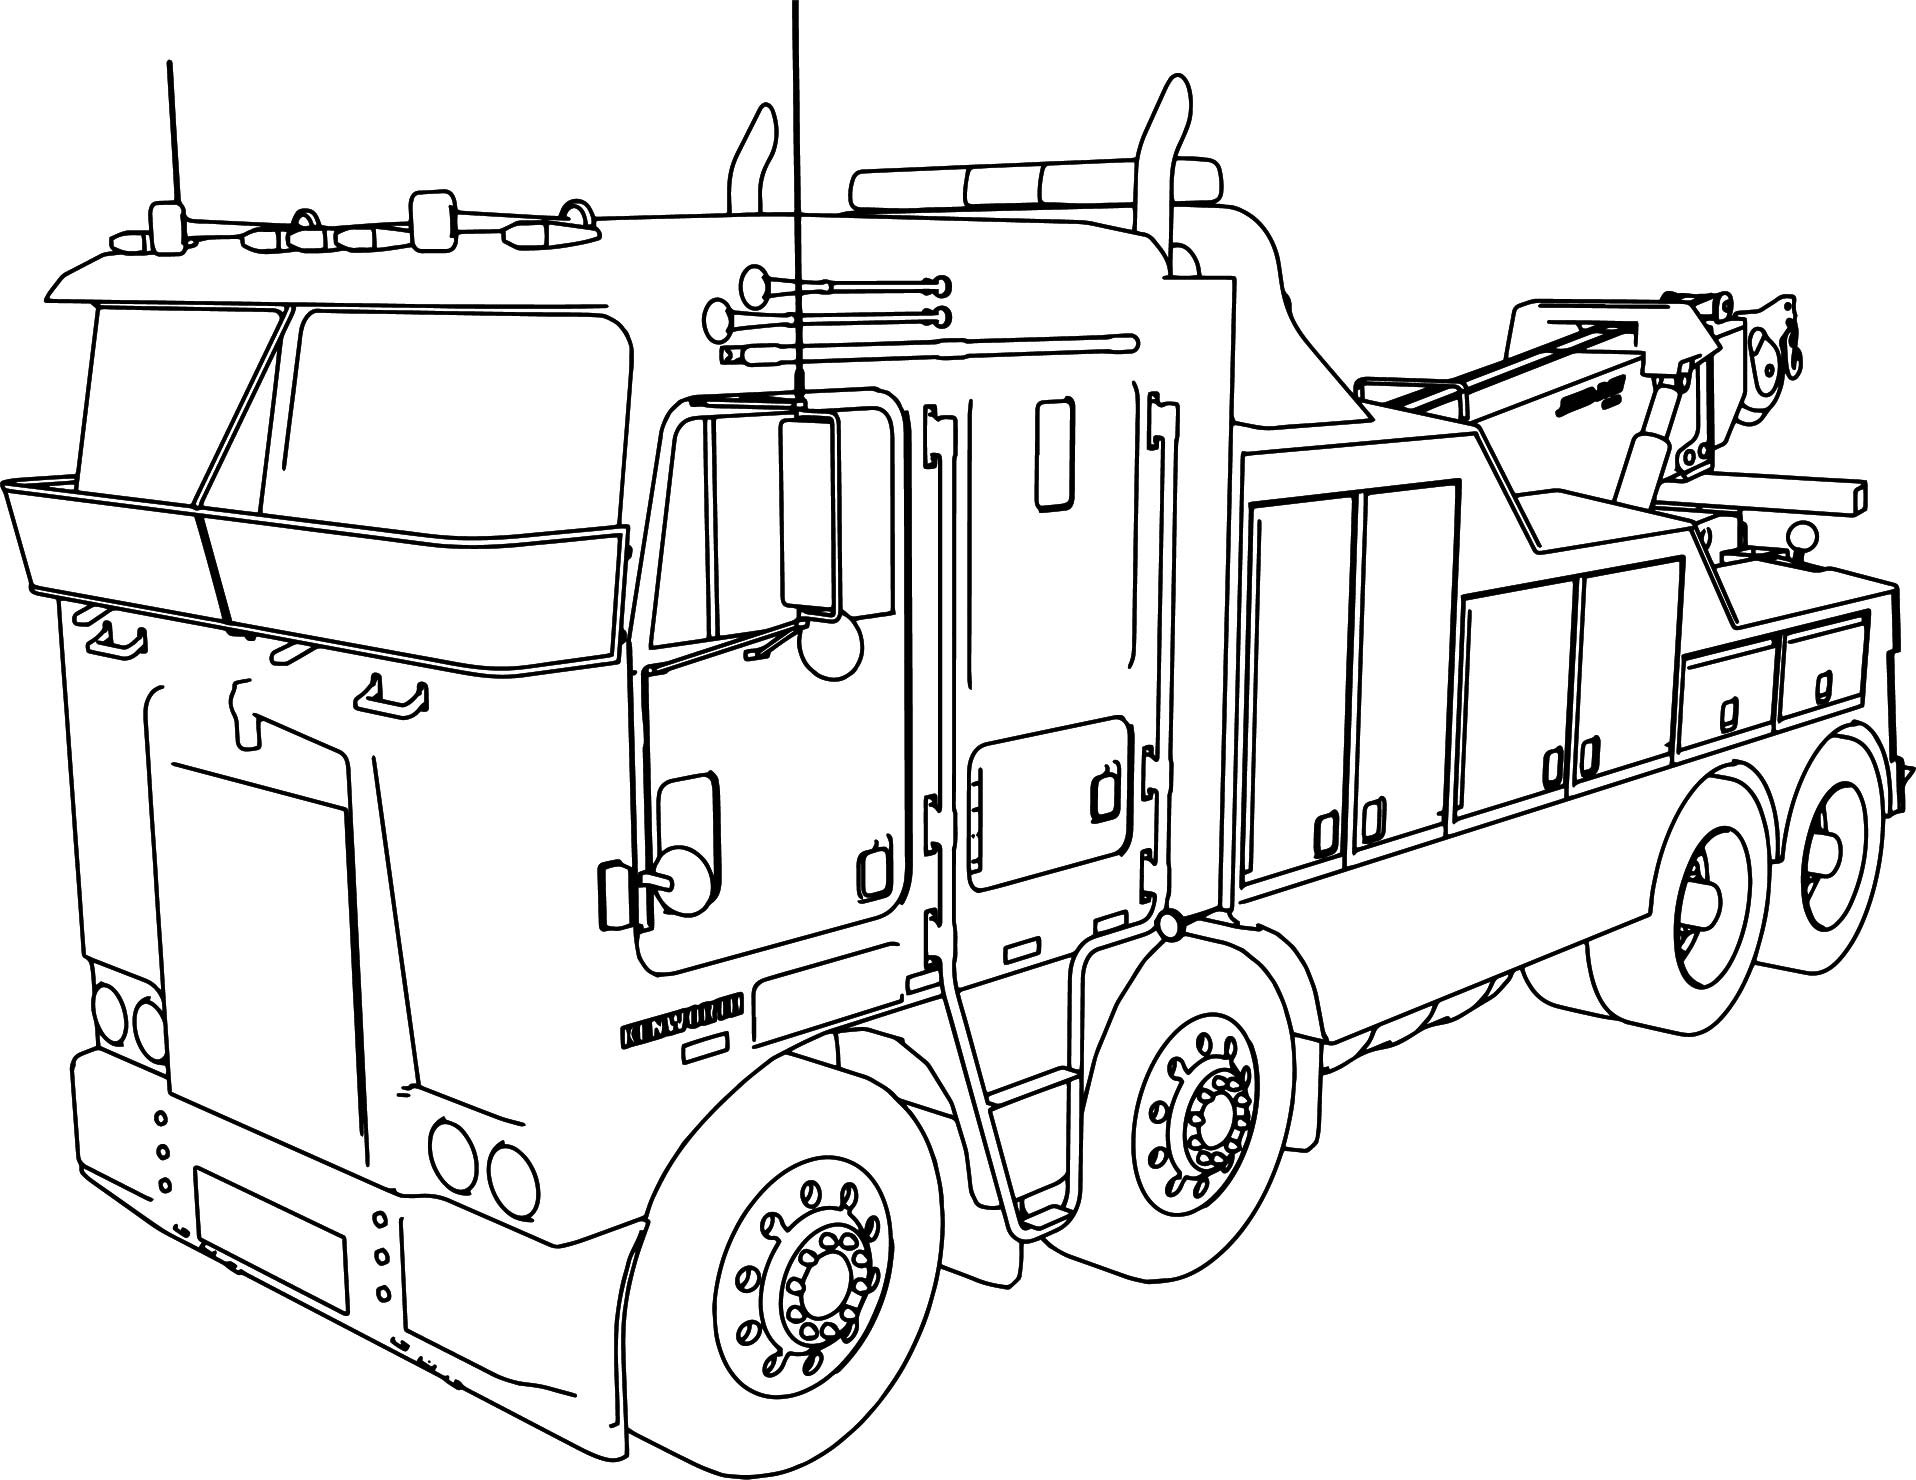 Semi Truck Line Drawing At Getdrawings